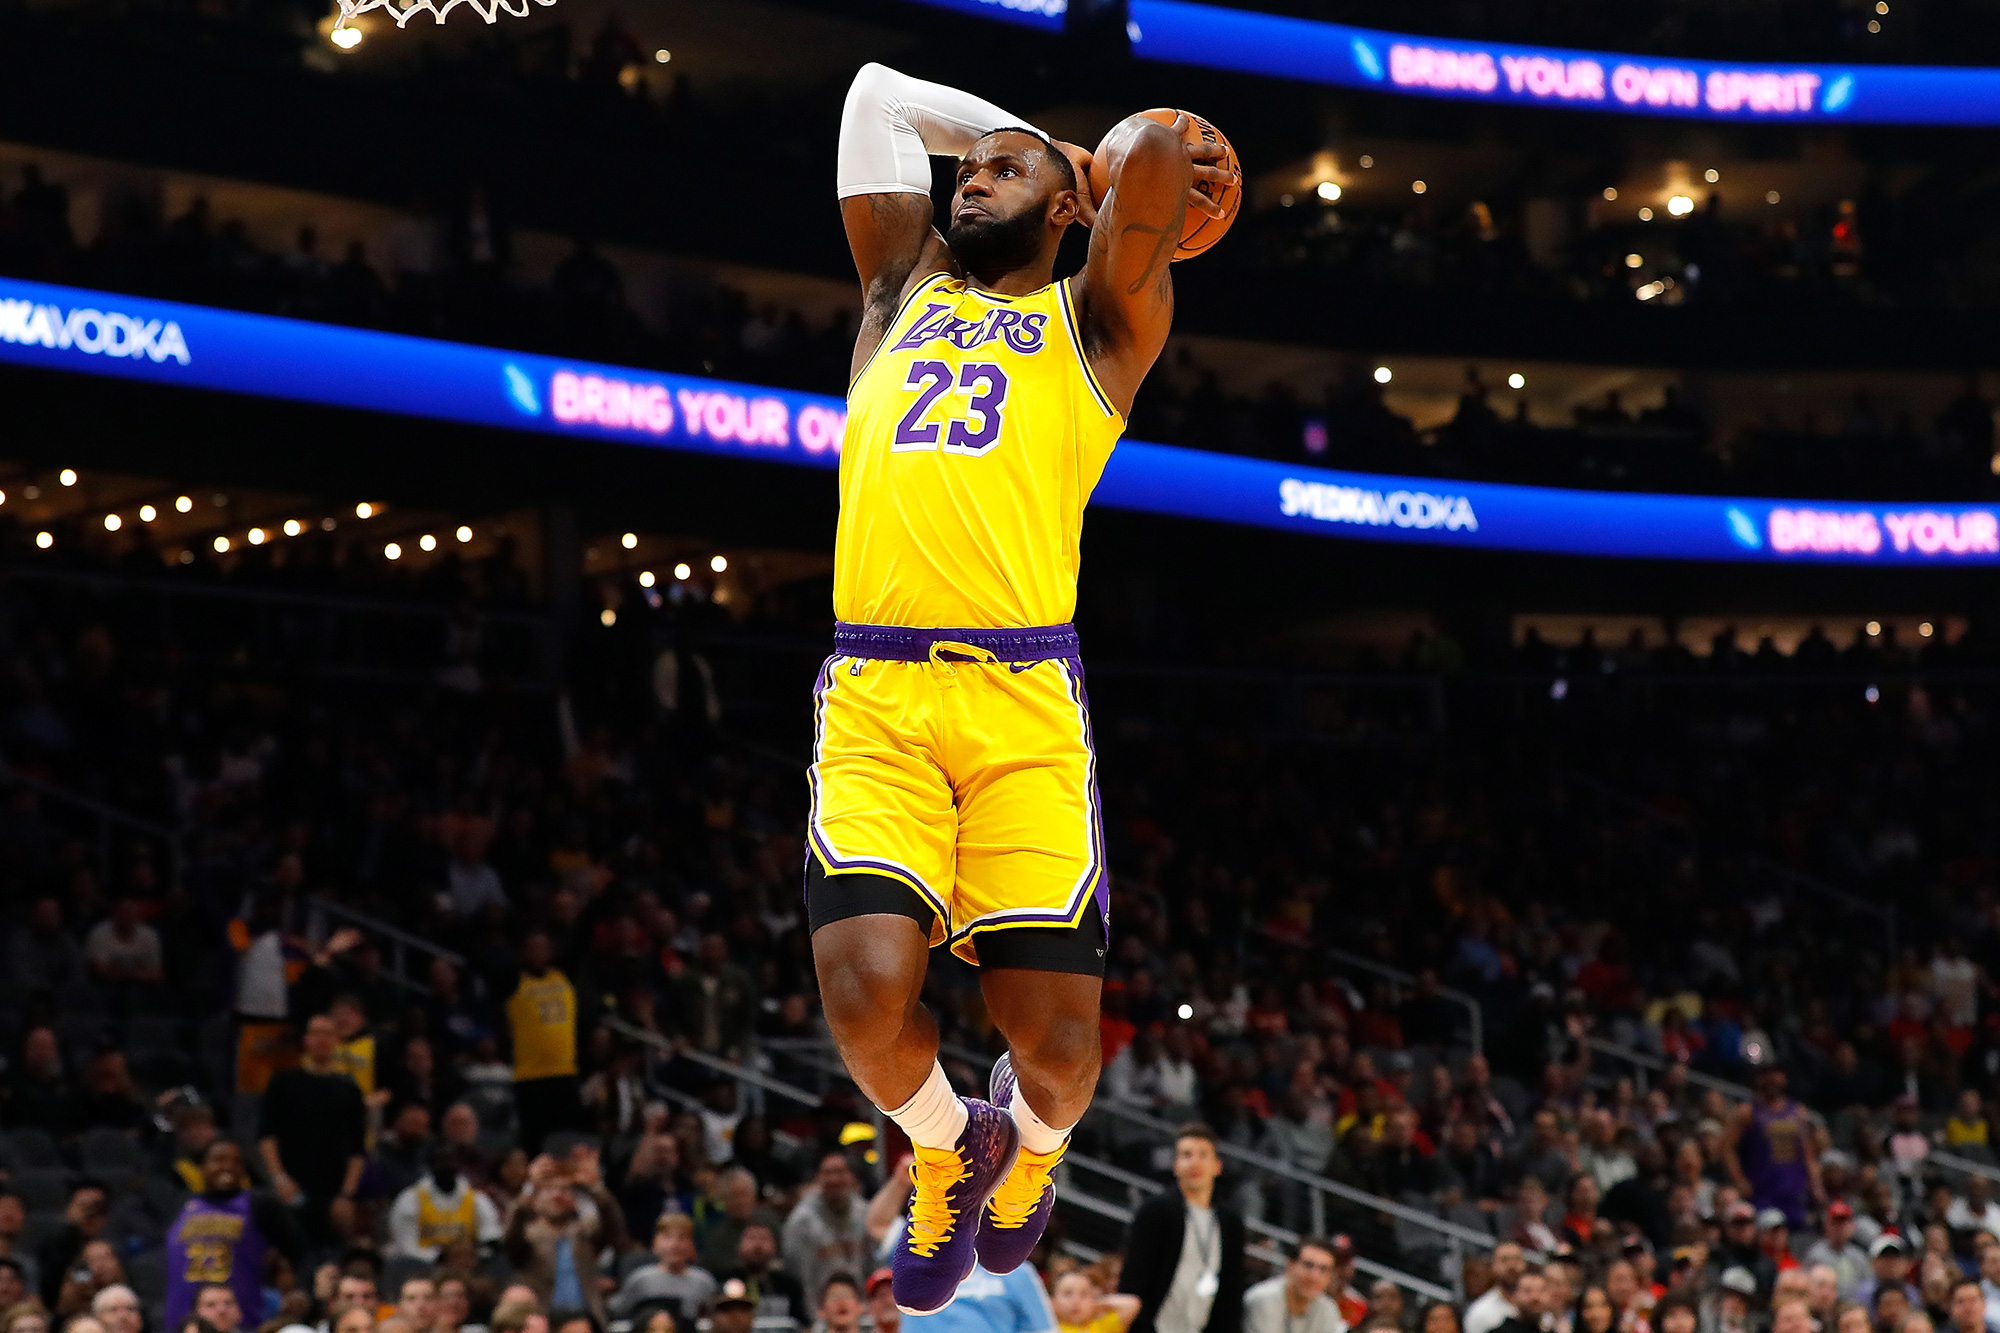 LeBron James #23 of the Los Angeles Lakers dunks against the Atlanta Hawks in the first half at State Farm Arena